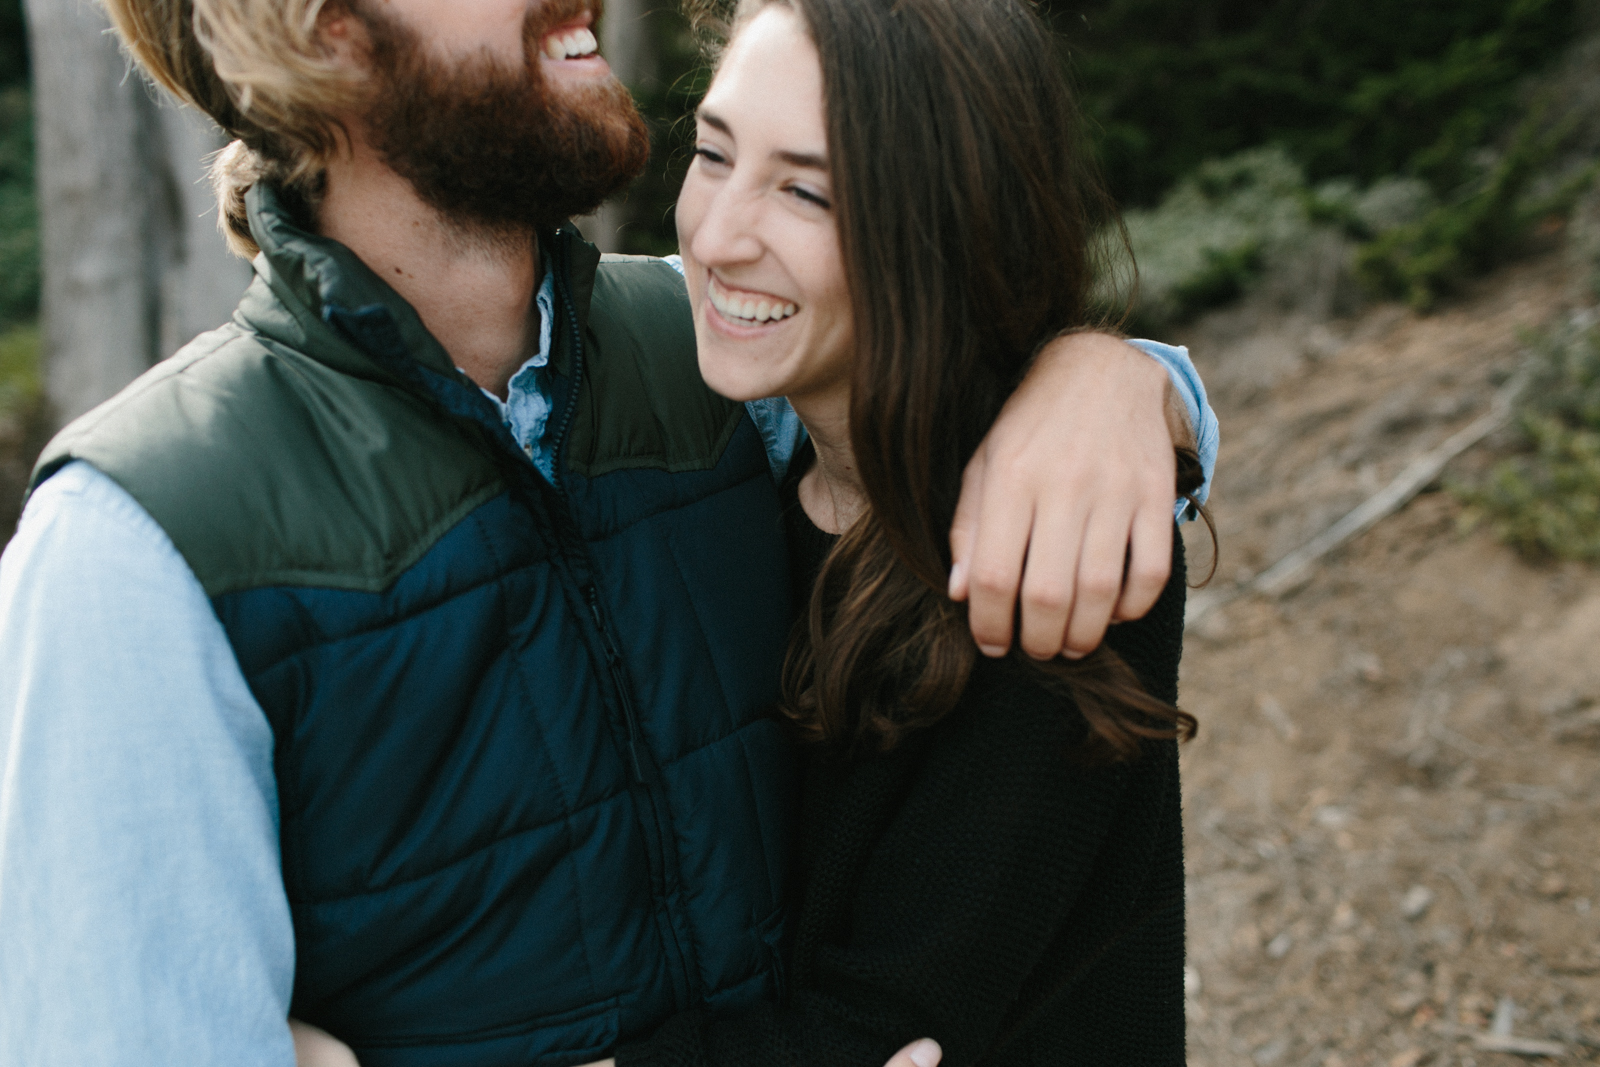 San Francisco Engagement Photography by Bay Area Wedding Photographer Mae Stier-013.jpg